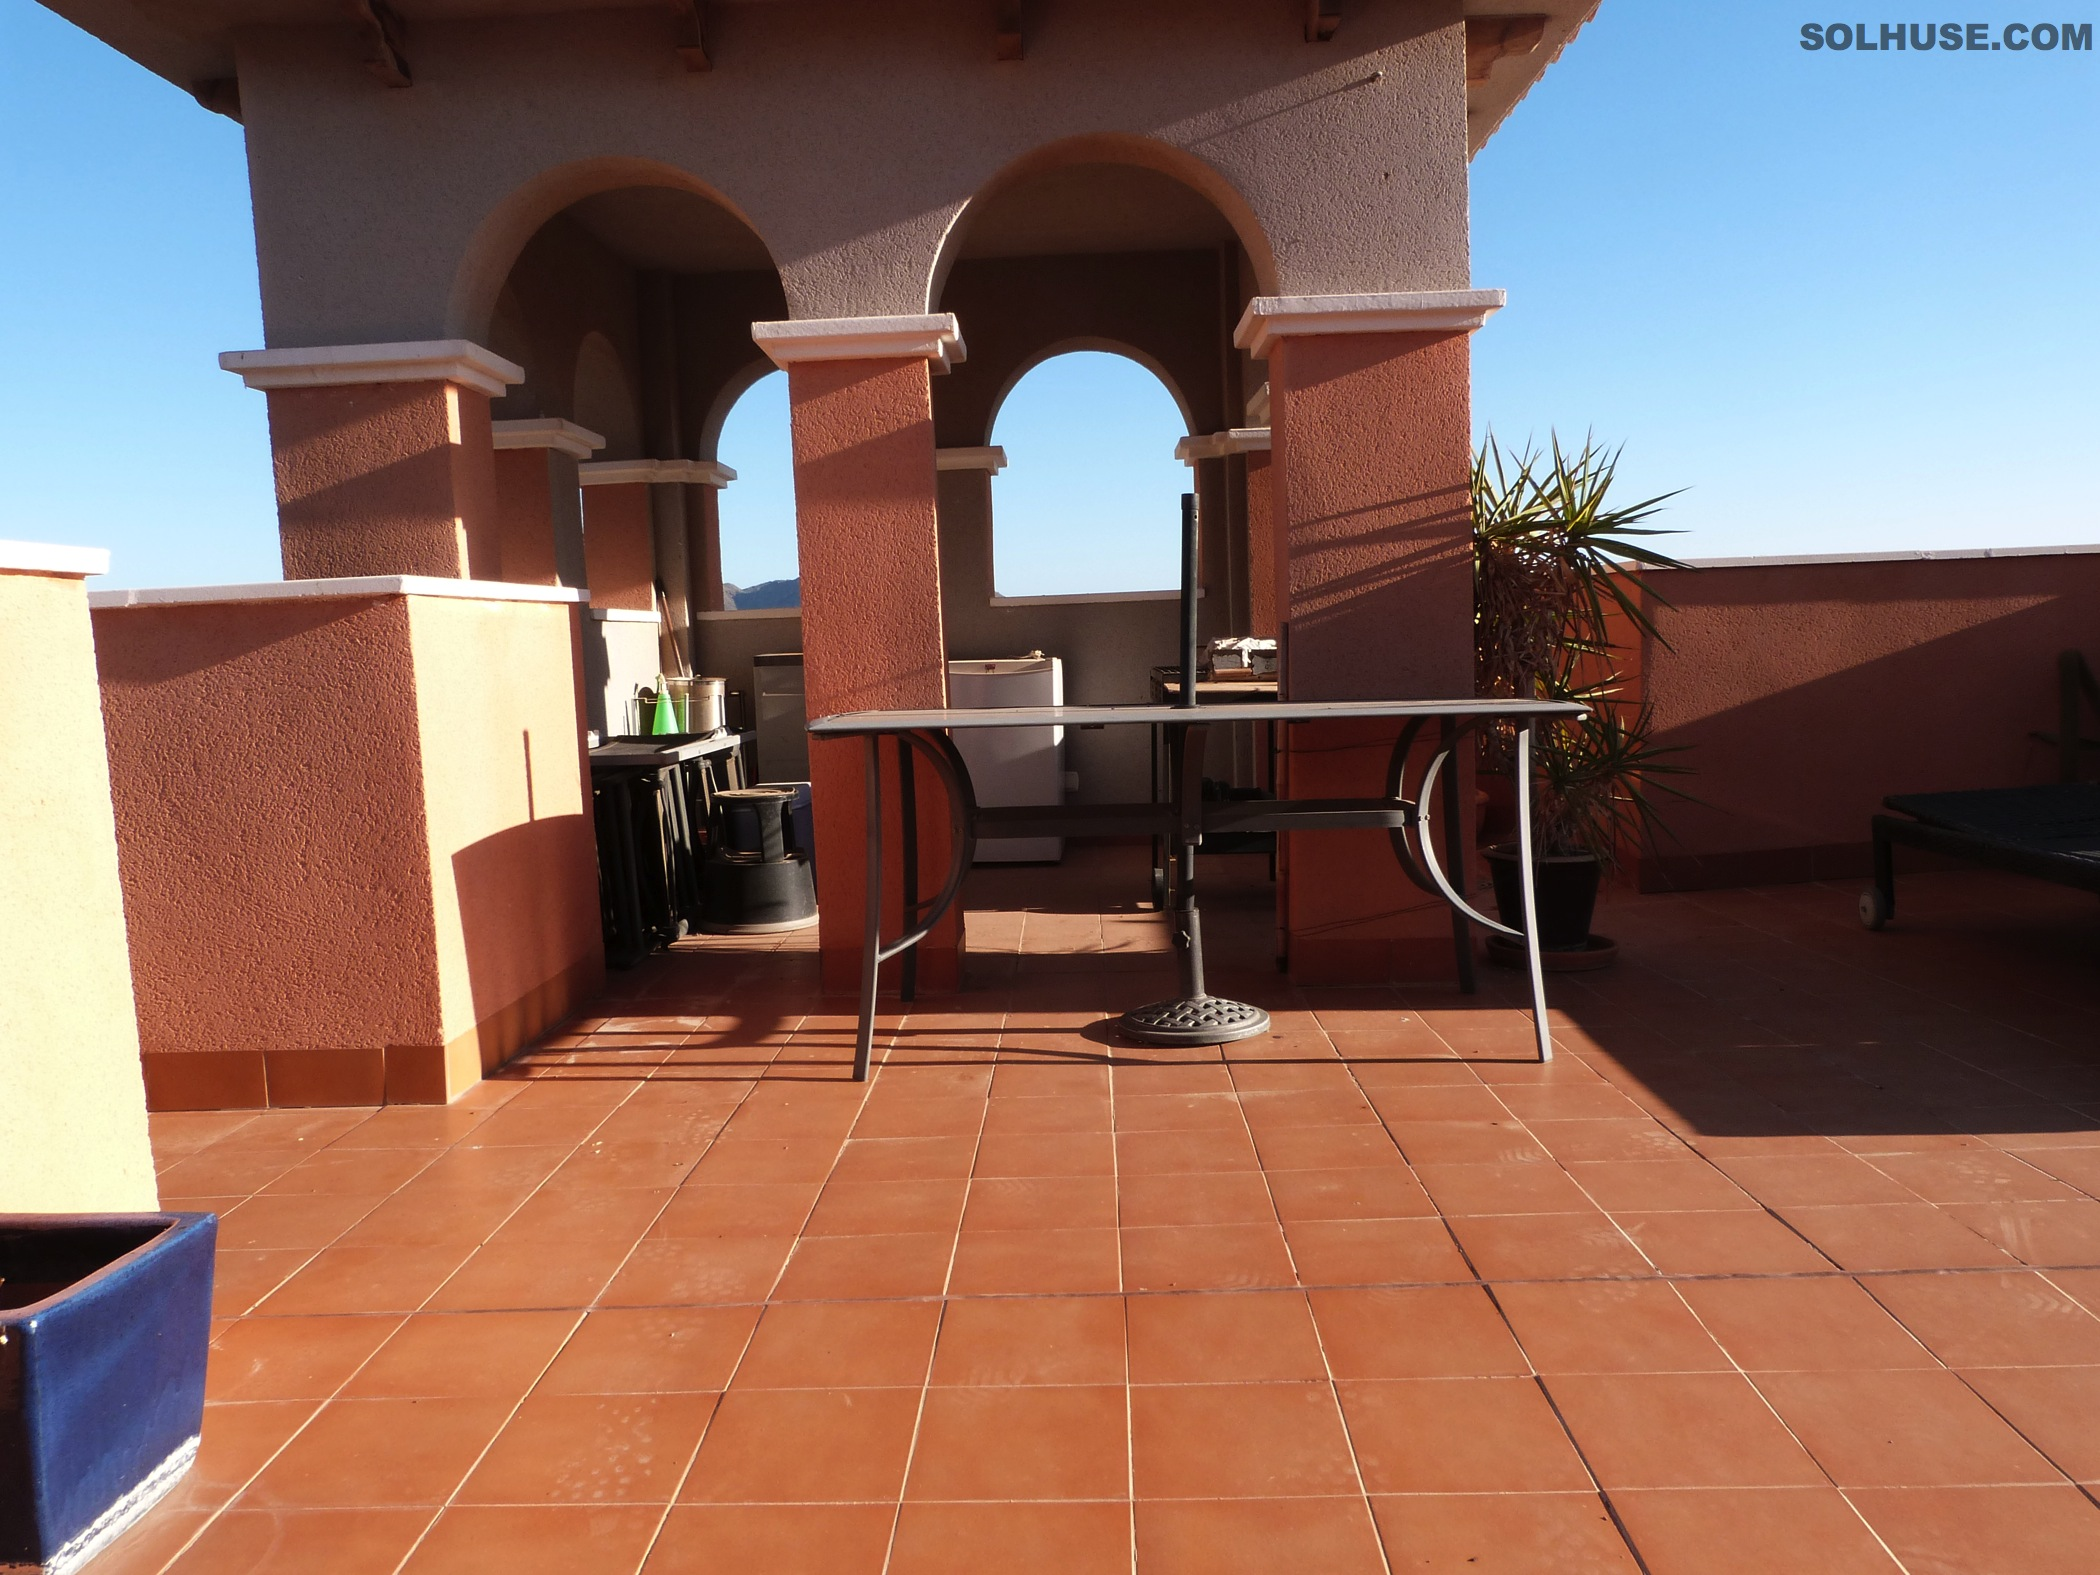 IMMACULATE 3 BED PENTHOUSE, SEA VIEWS & COMMUNAL POOL